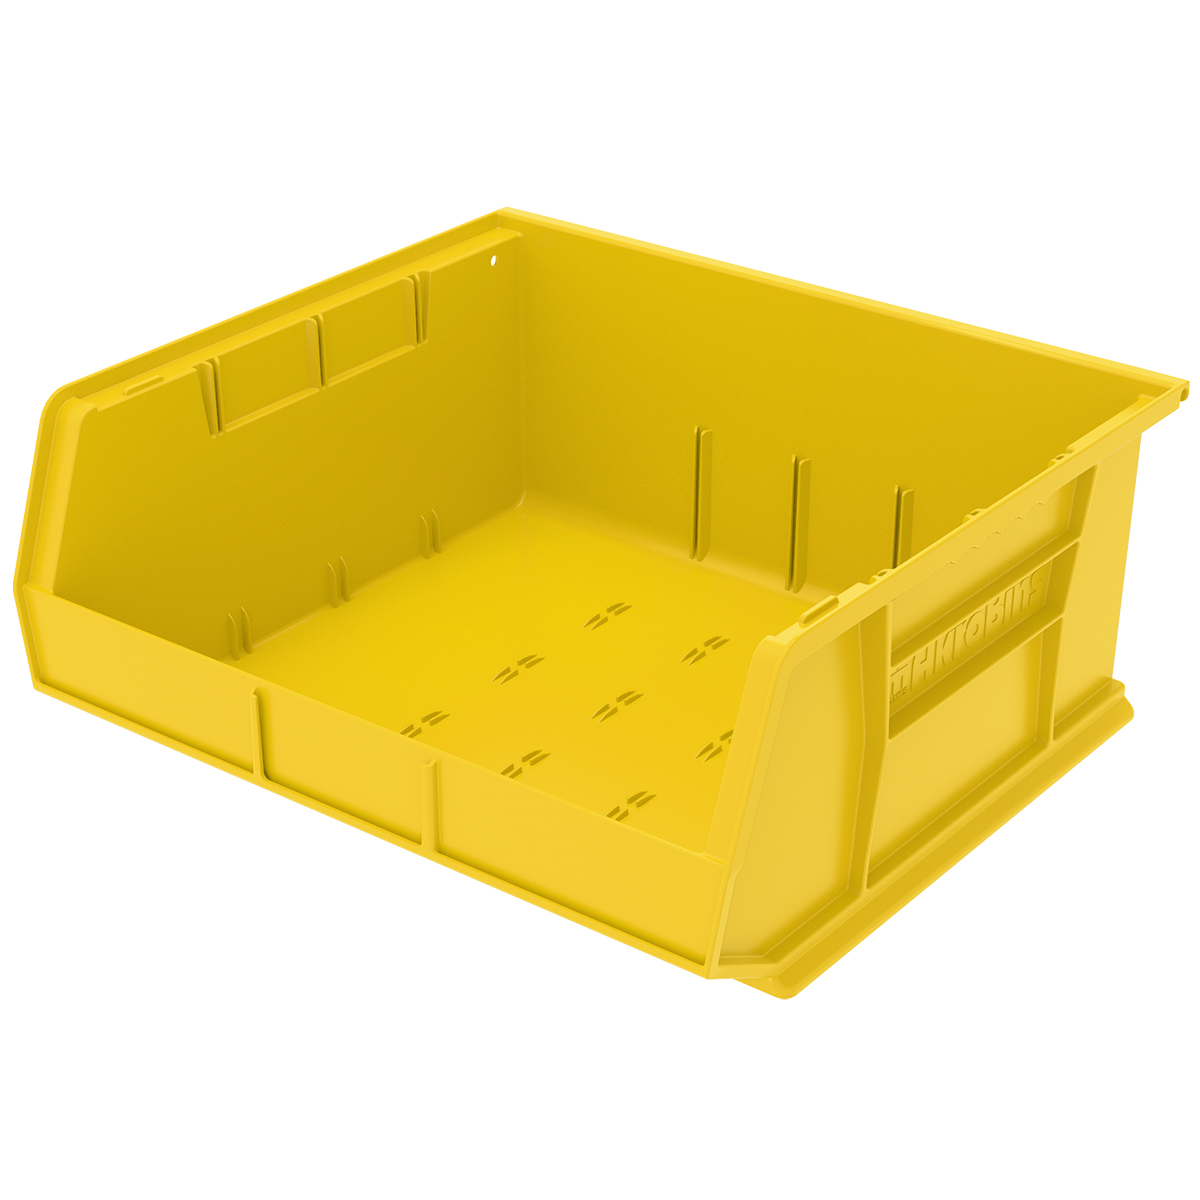 AkroBin 14-3/4 x 16-1/2 x 7, Yellow (30250YELLO).  This item sold in carton quantities of 6.